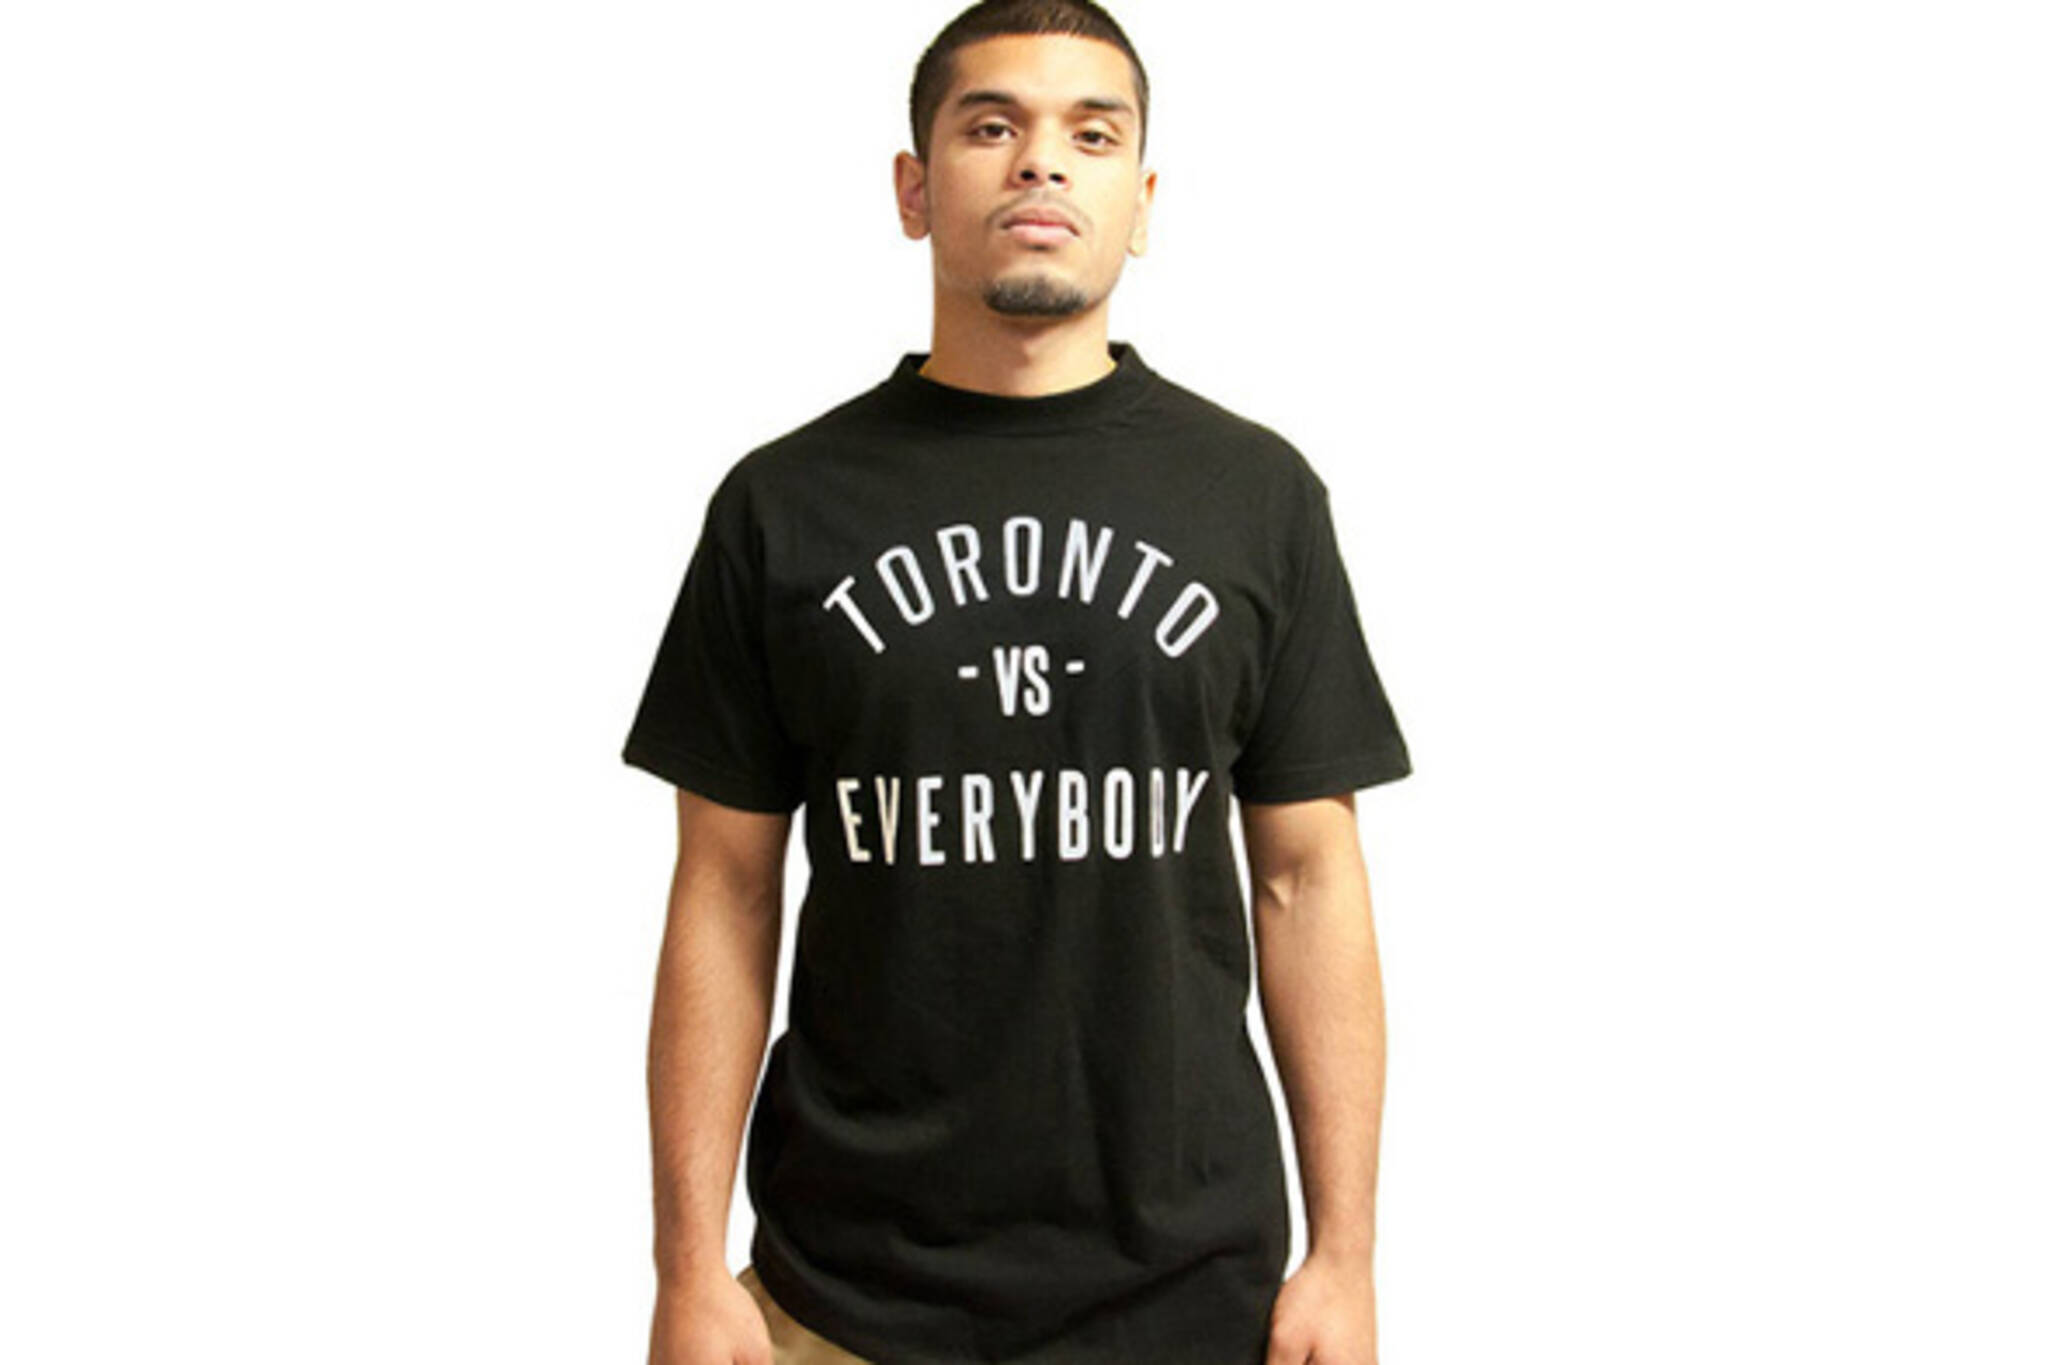 596eeced2ba 10 great Toronto themed t-shirts you can buy right now